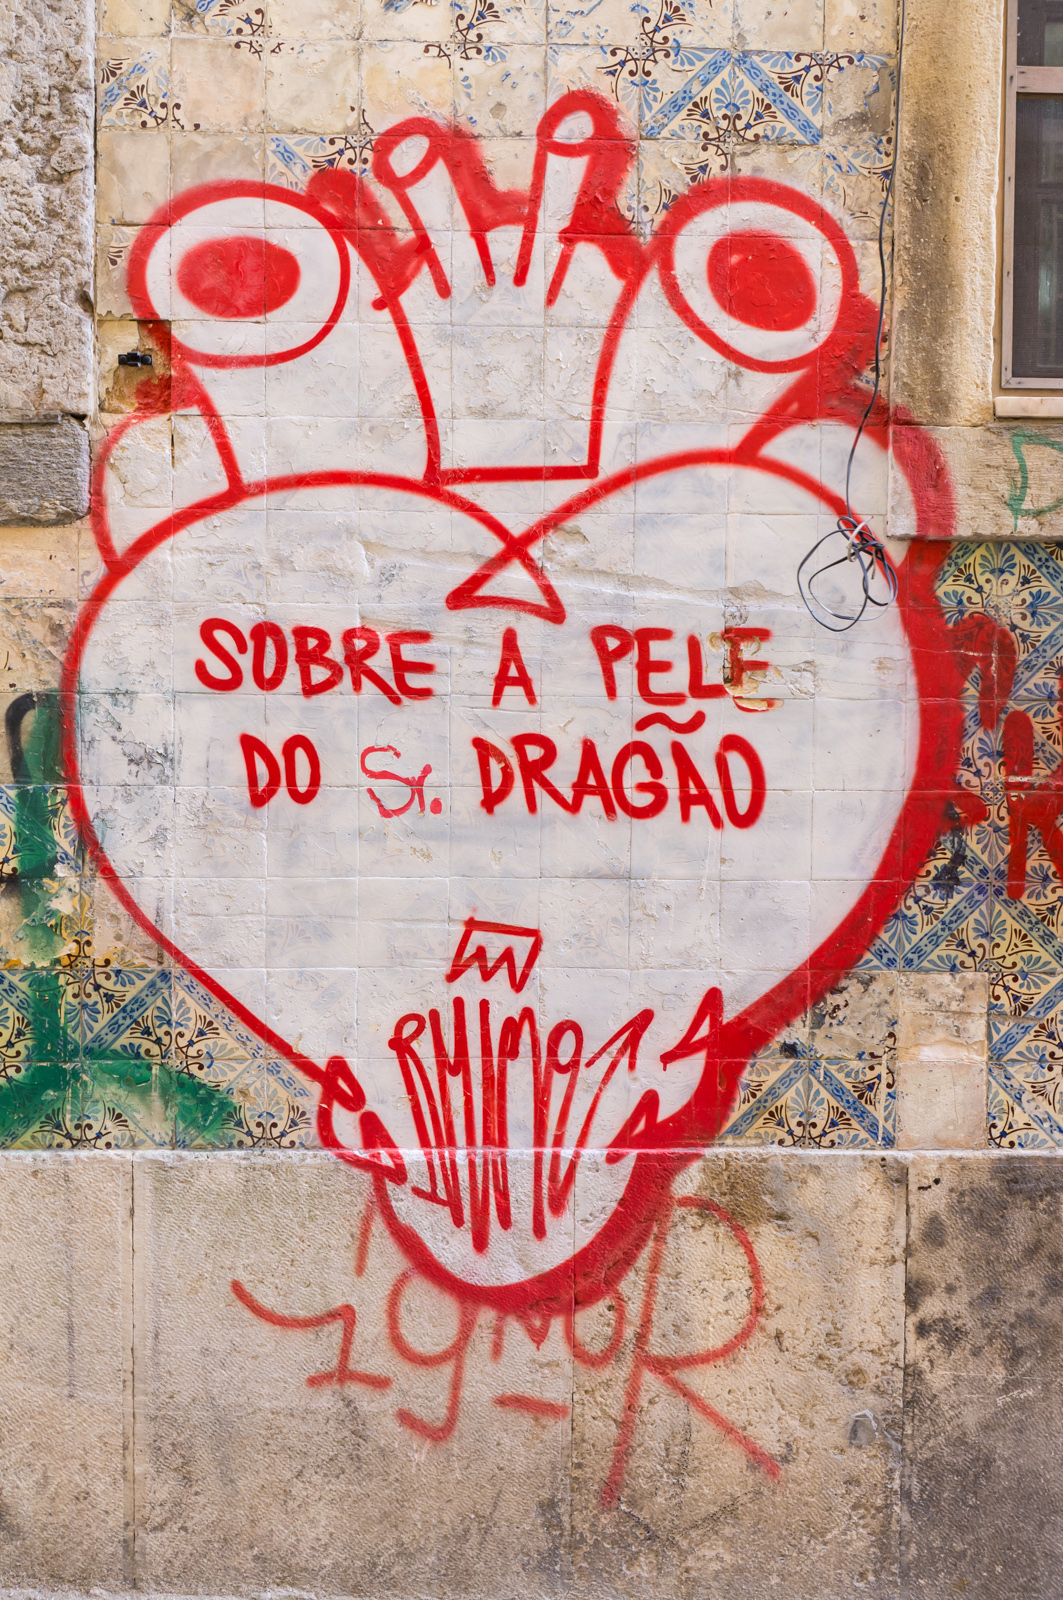 graffiti of a red heart with veins emerging; inside are the words